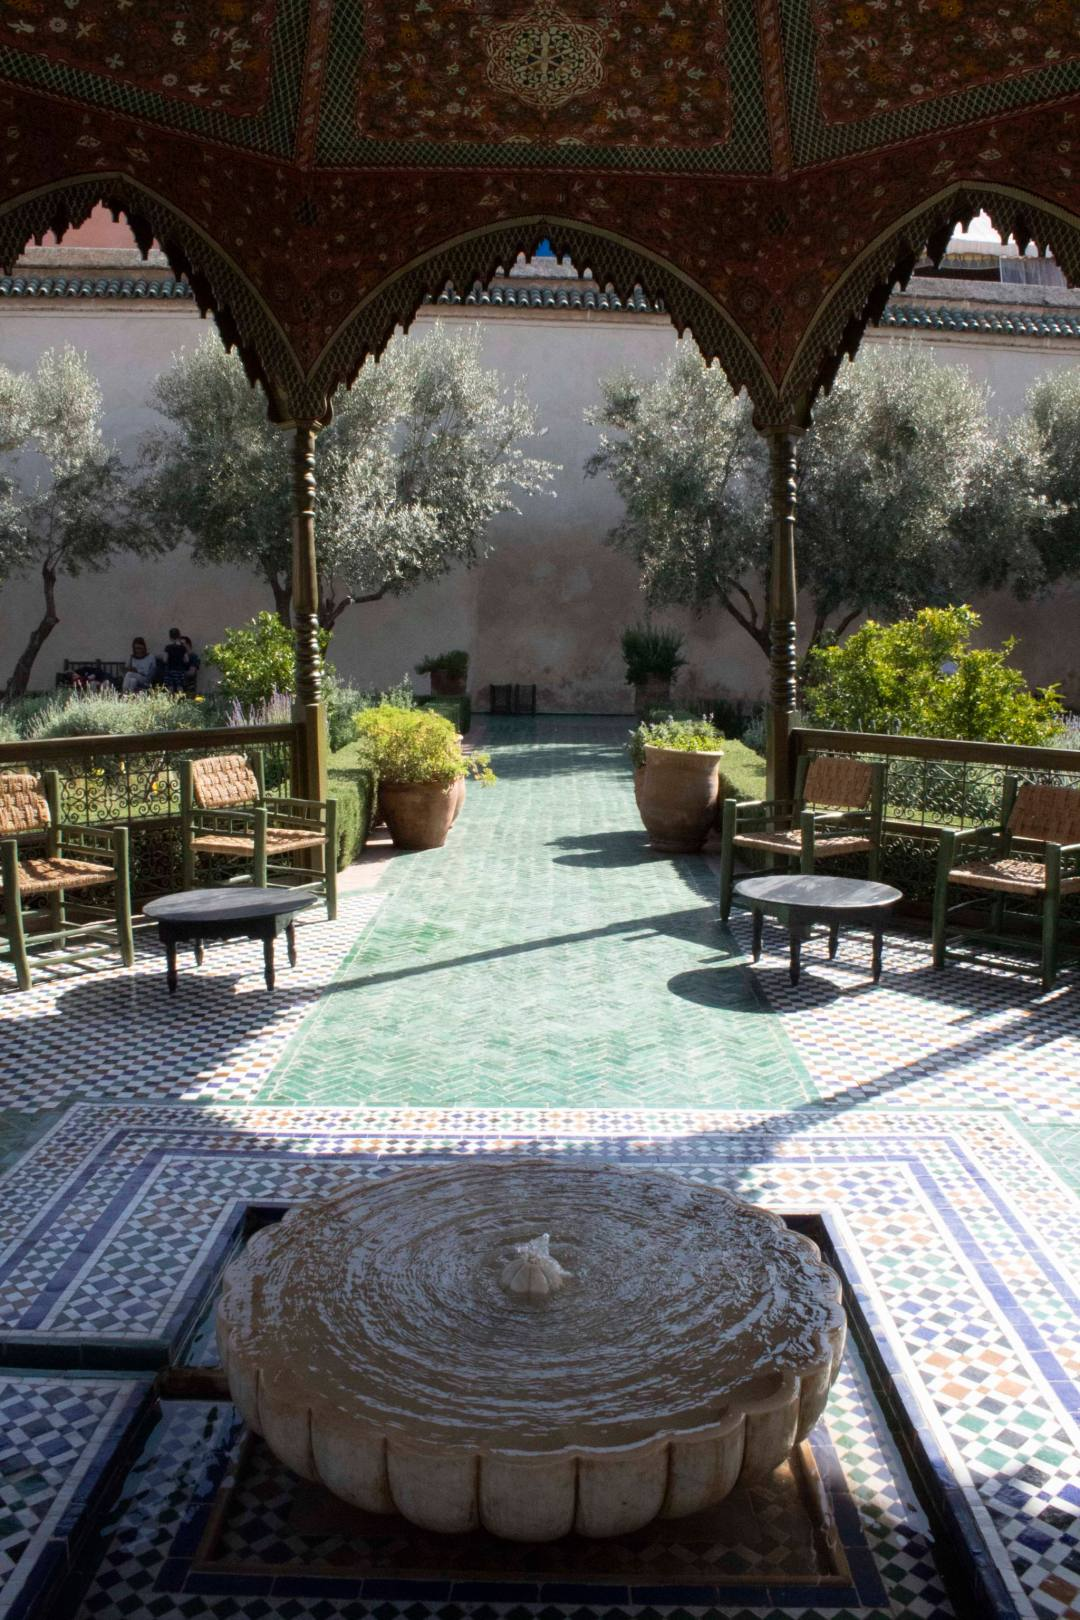 bubbling fountain and covered seating in tiled garden